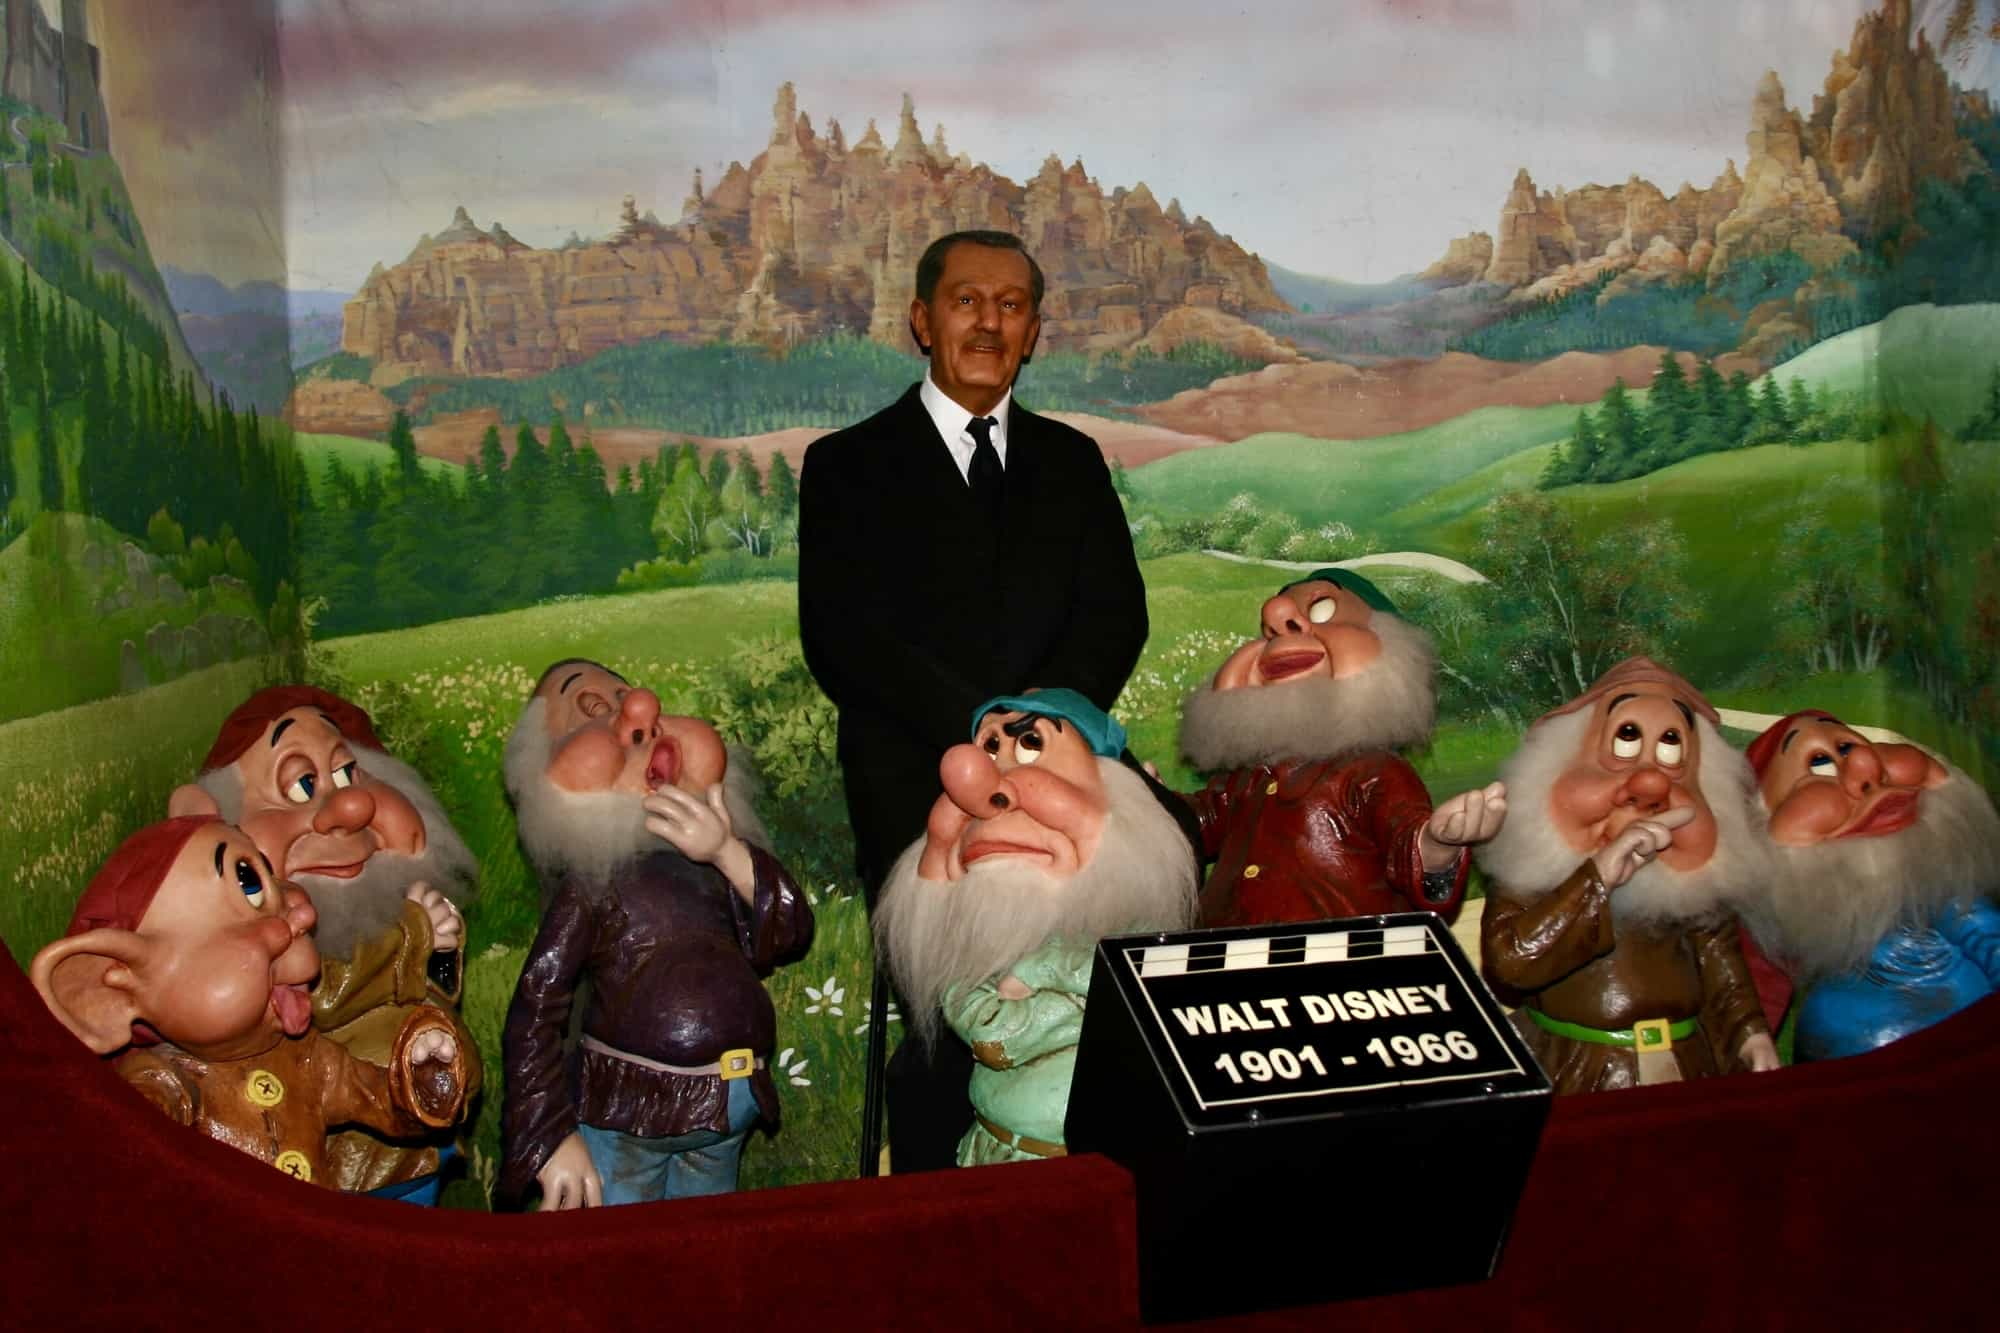 7 Dwarfs Names and Where to Find Them at Disney